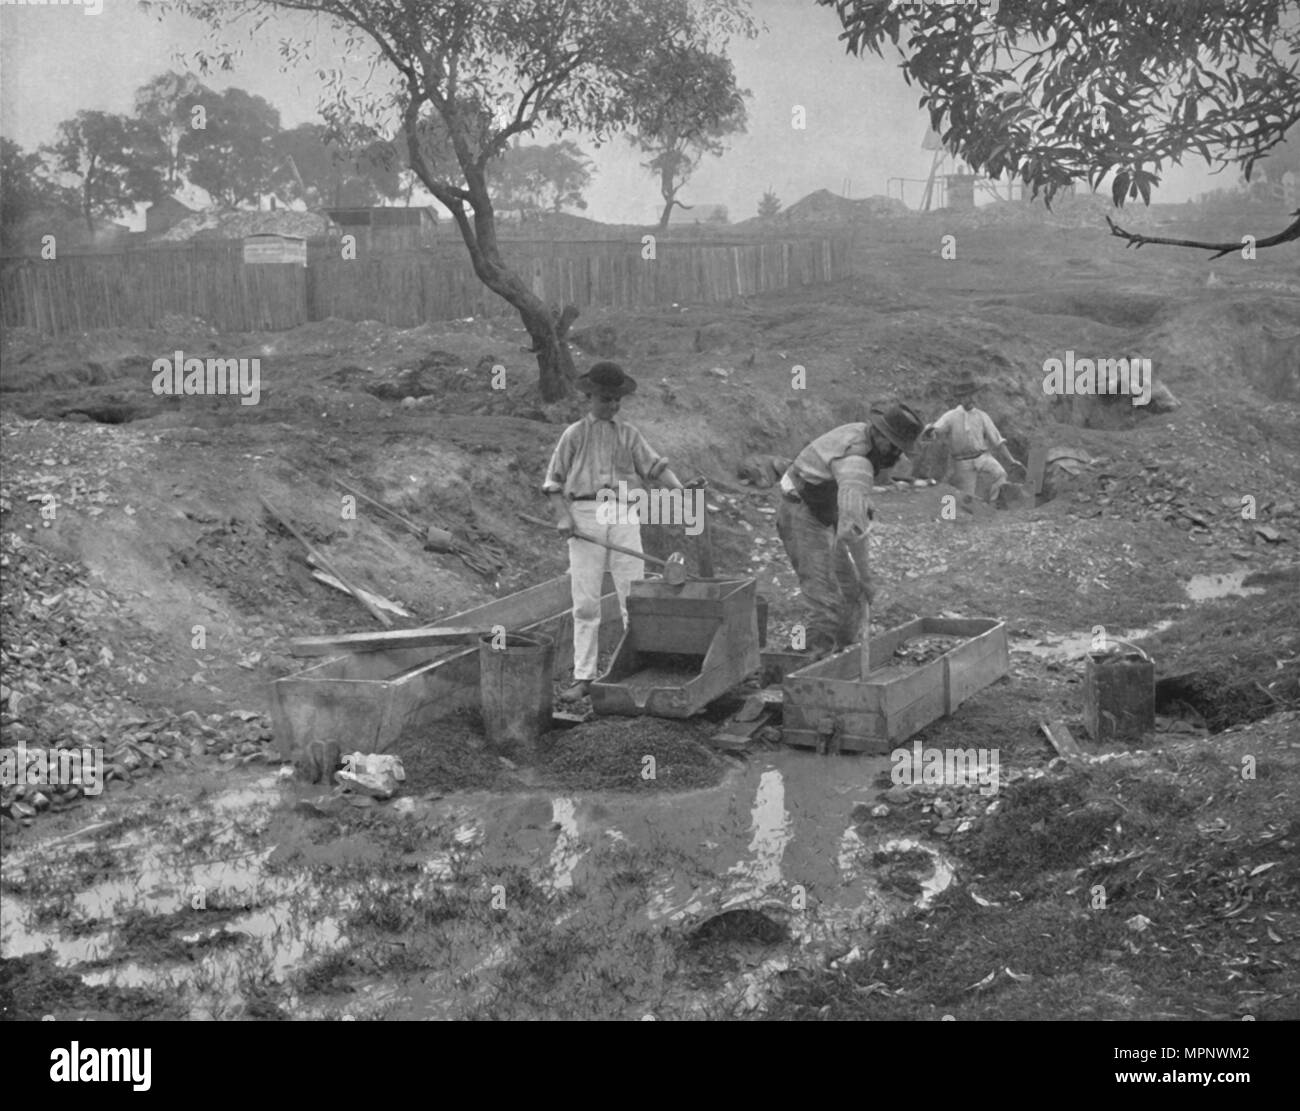 Panning Gold Black And White Stock Photos Amp Images Alamy